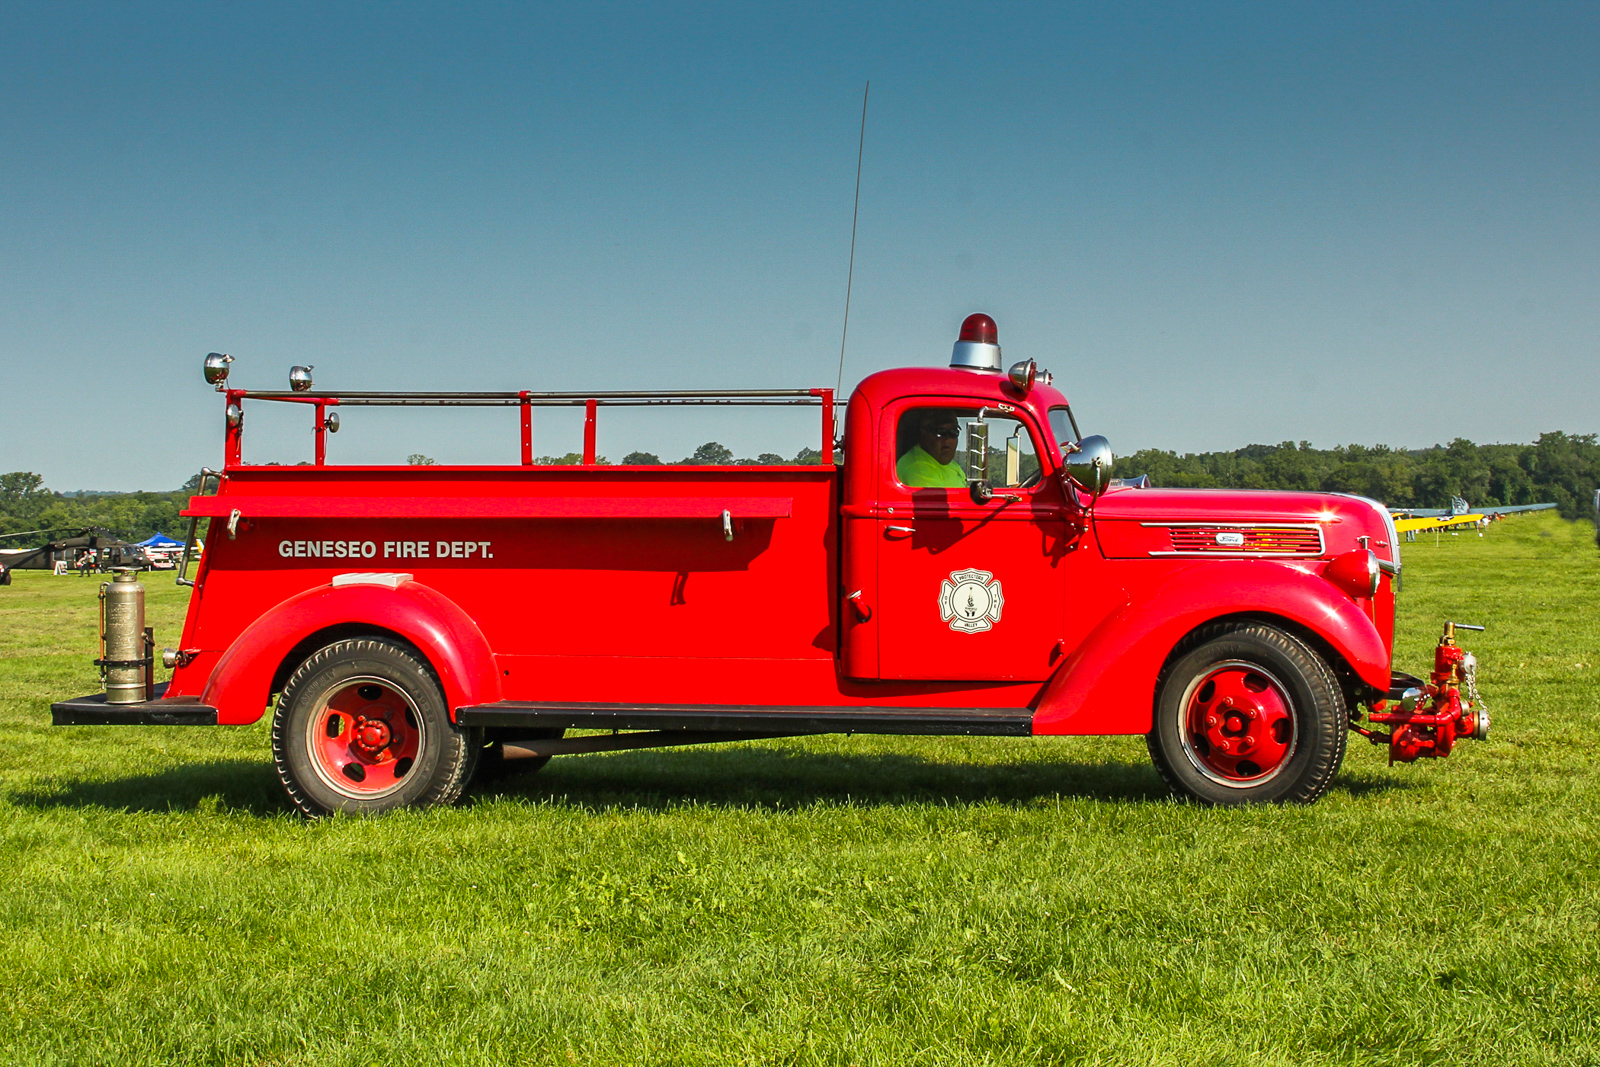 1939 Ford fire truck; one of several vintage firefighting vehicles on display. (photo by Tom Pawlesh)